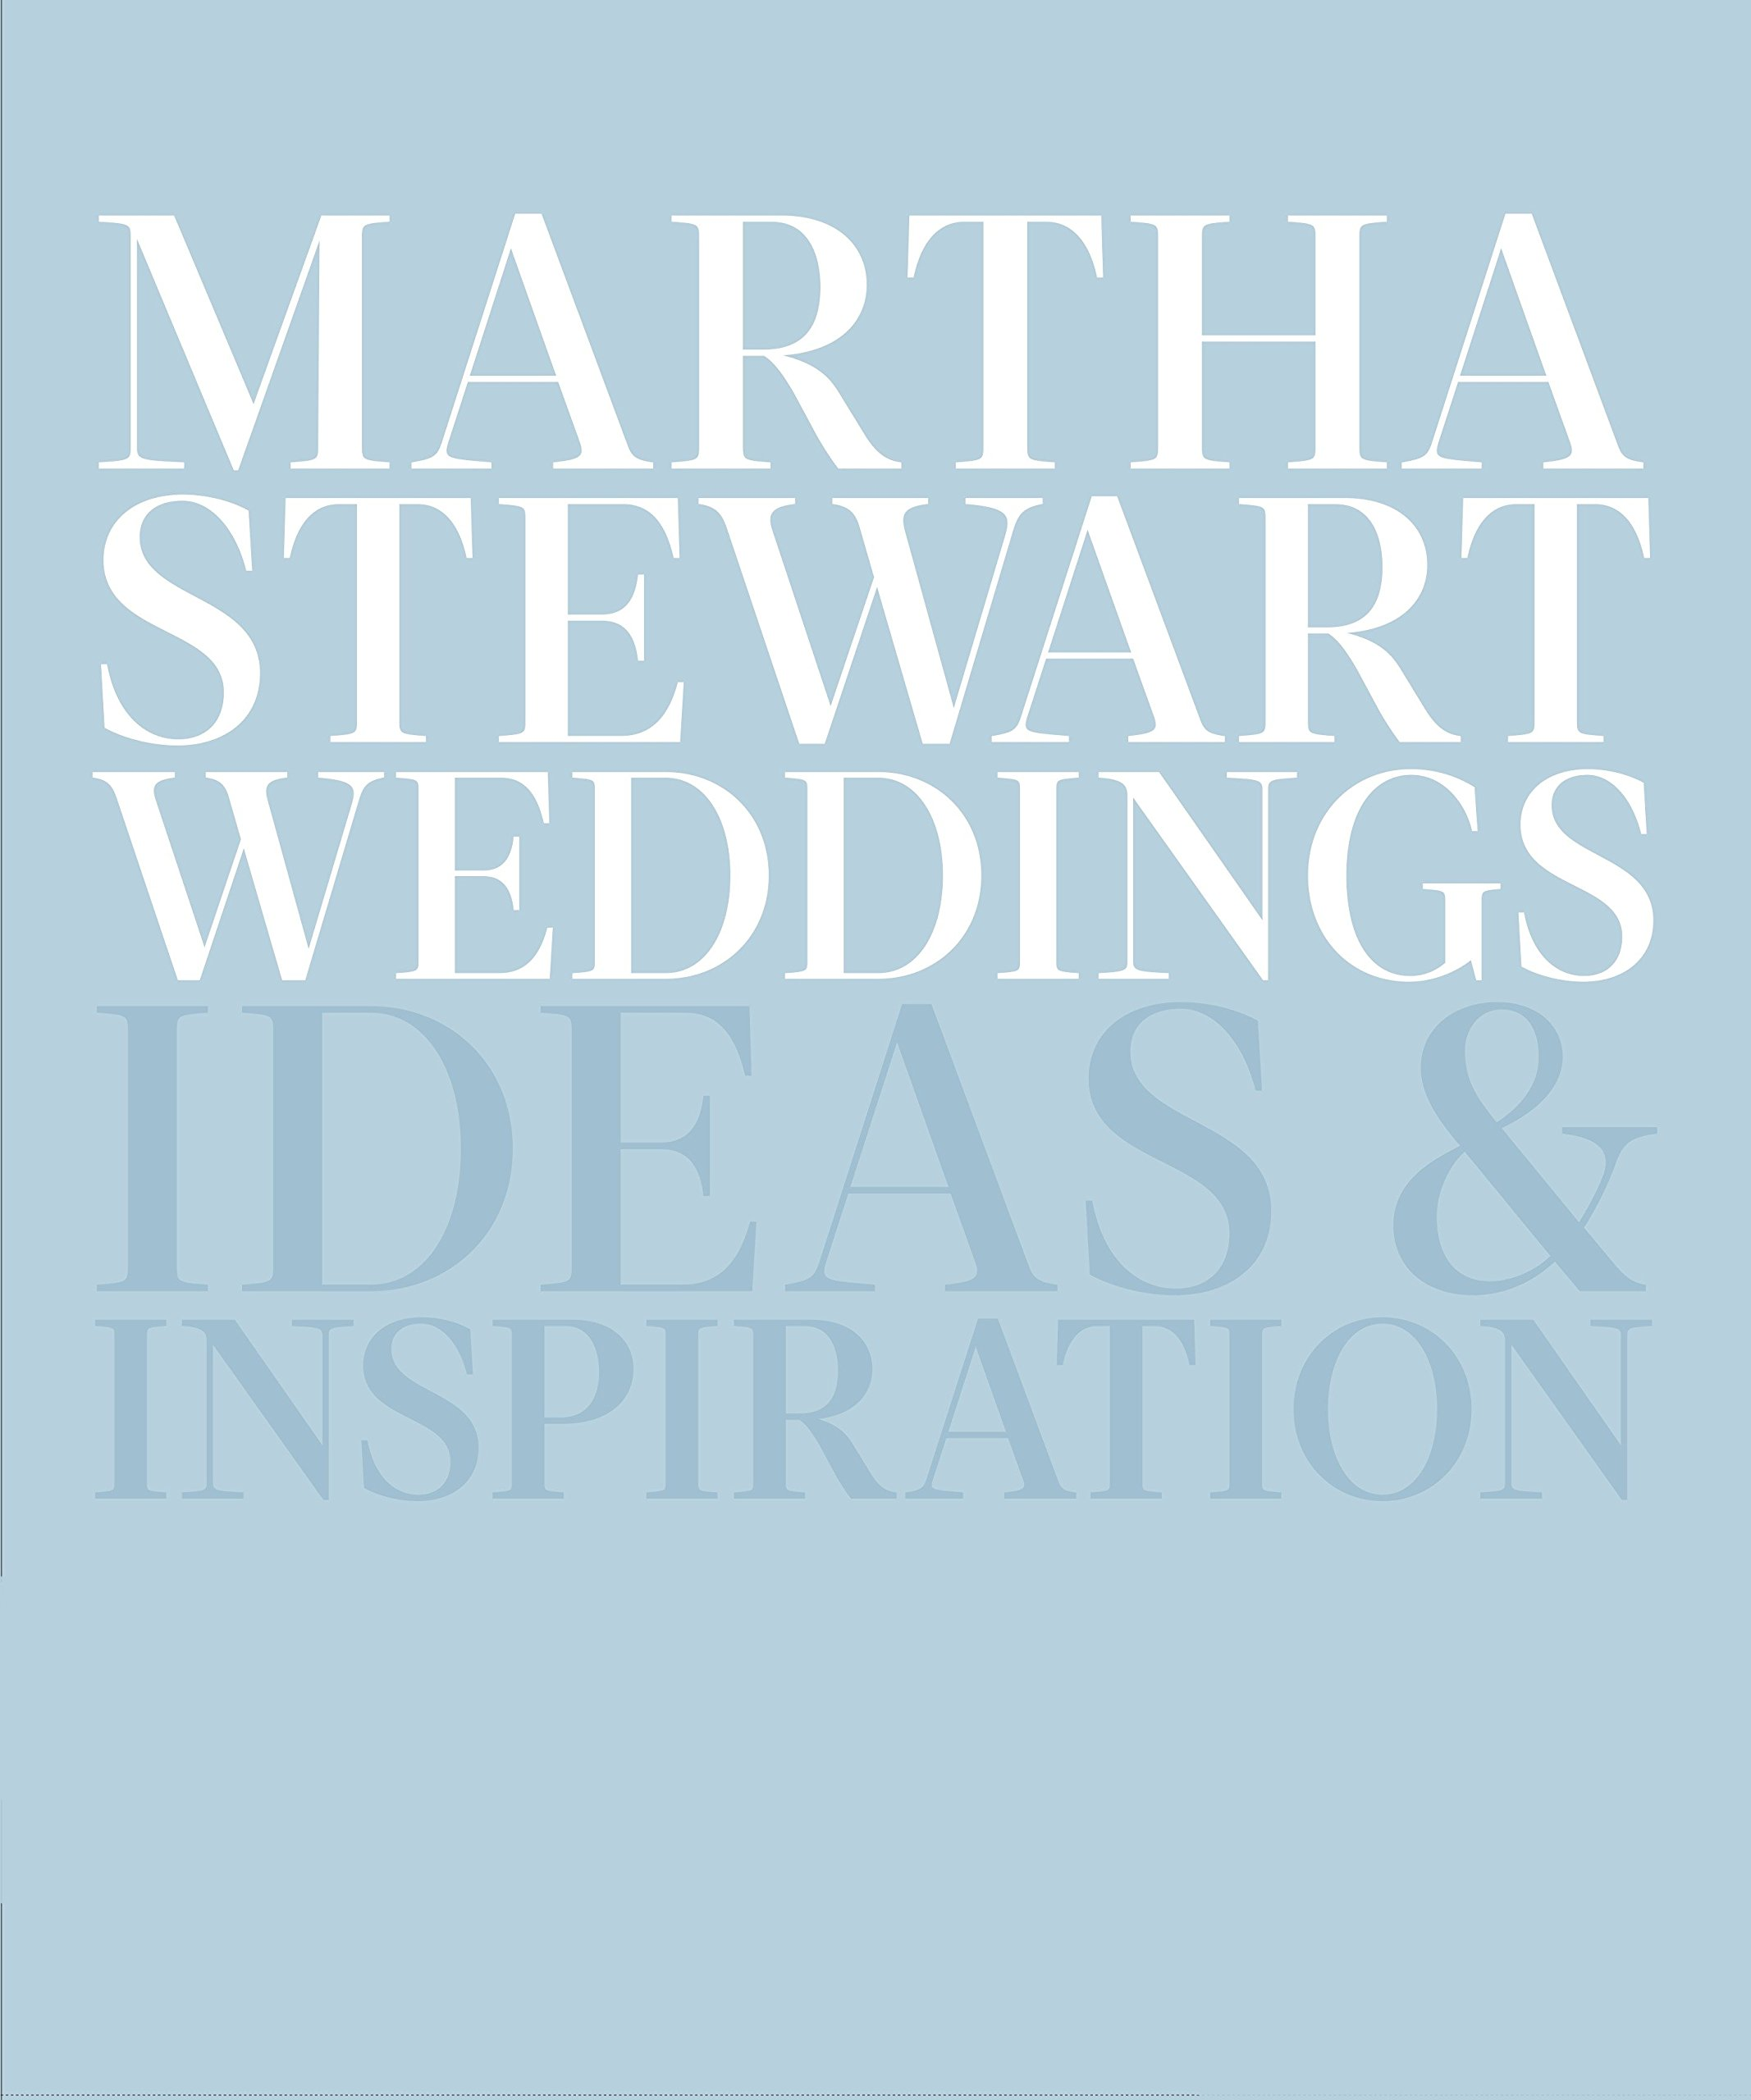 ffed6a5267 Martha Stewart Weddings  Ideas and Inspiration  Editors Of Martha Stewart  Weddings  9780307954657  Amazon.com  Books